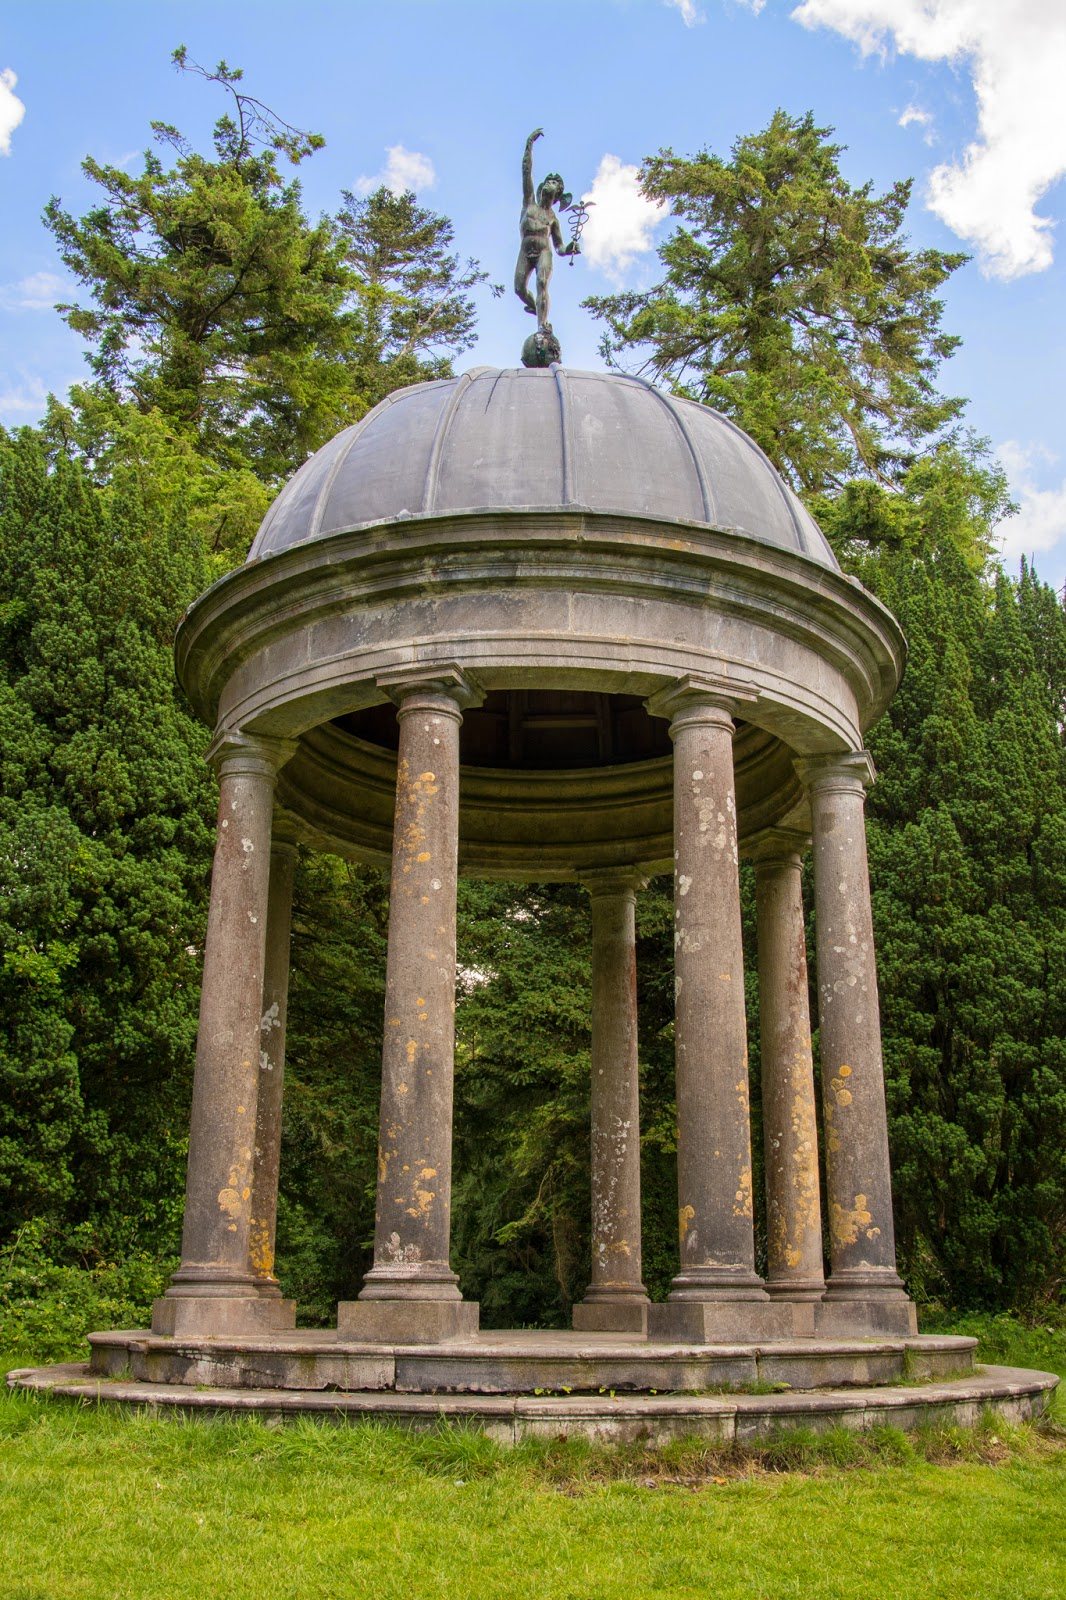 Temple of Mercury, Dromoland Castle